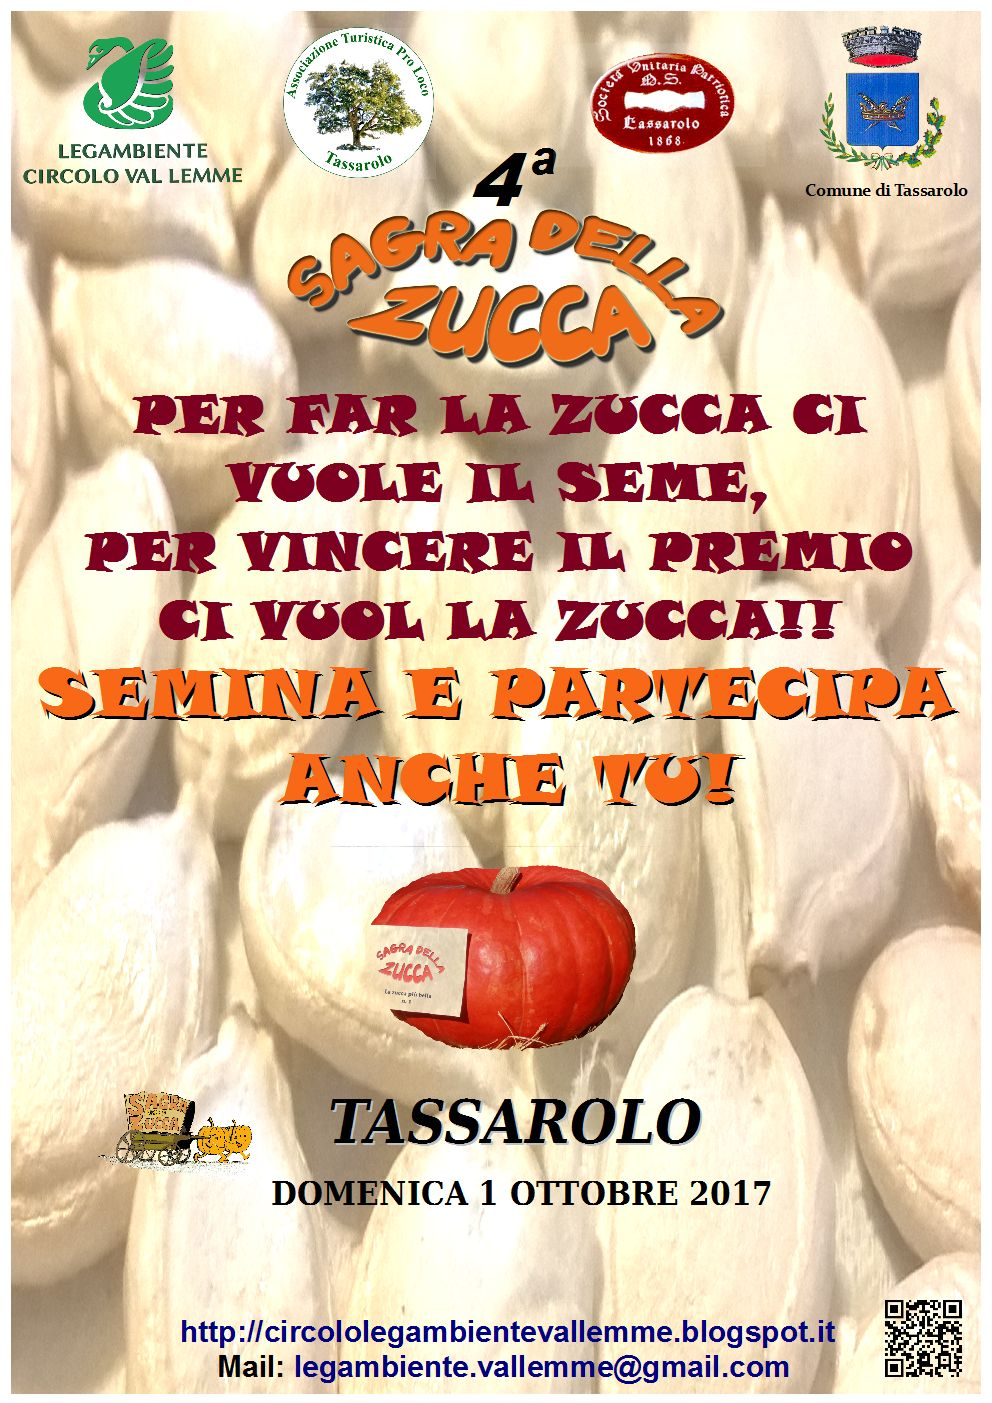 IV SAGRA DELLA ZUCCA E MERCATO CONTADINO